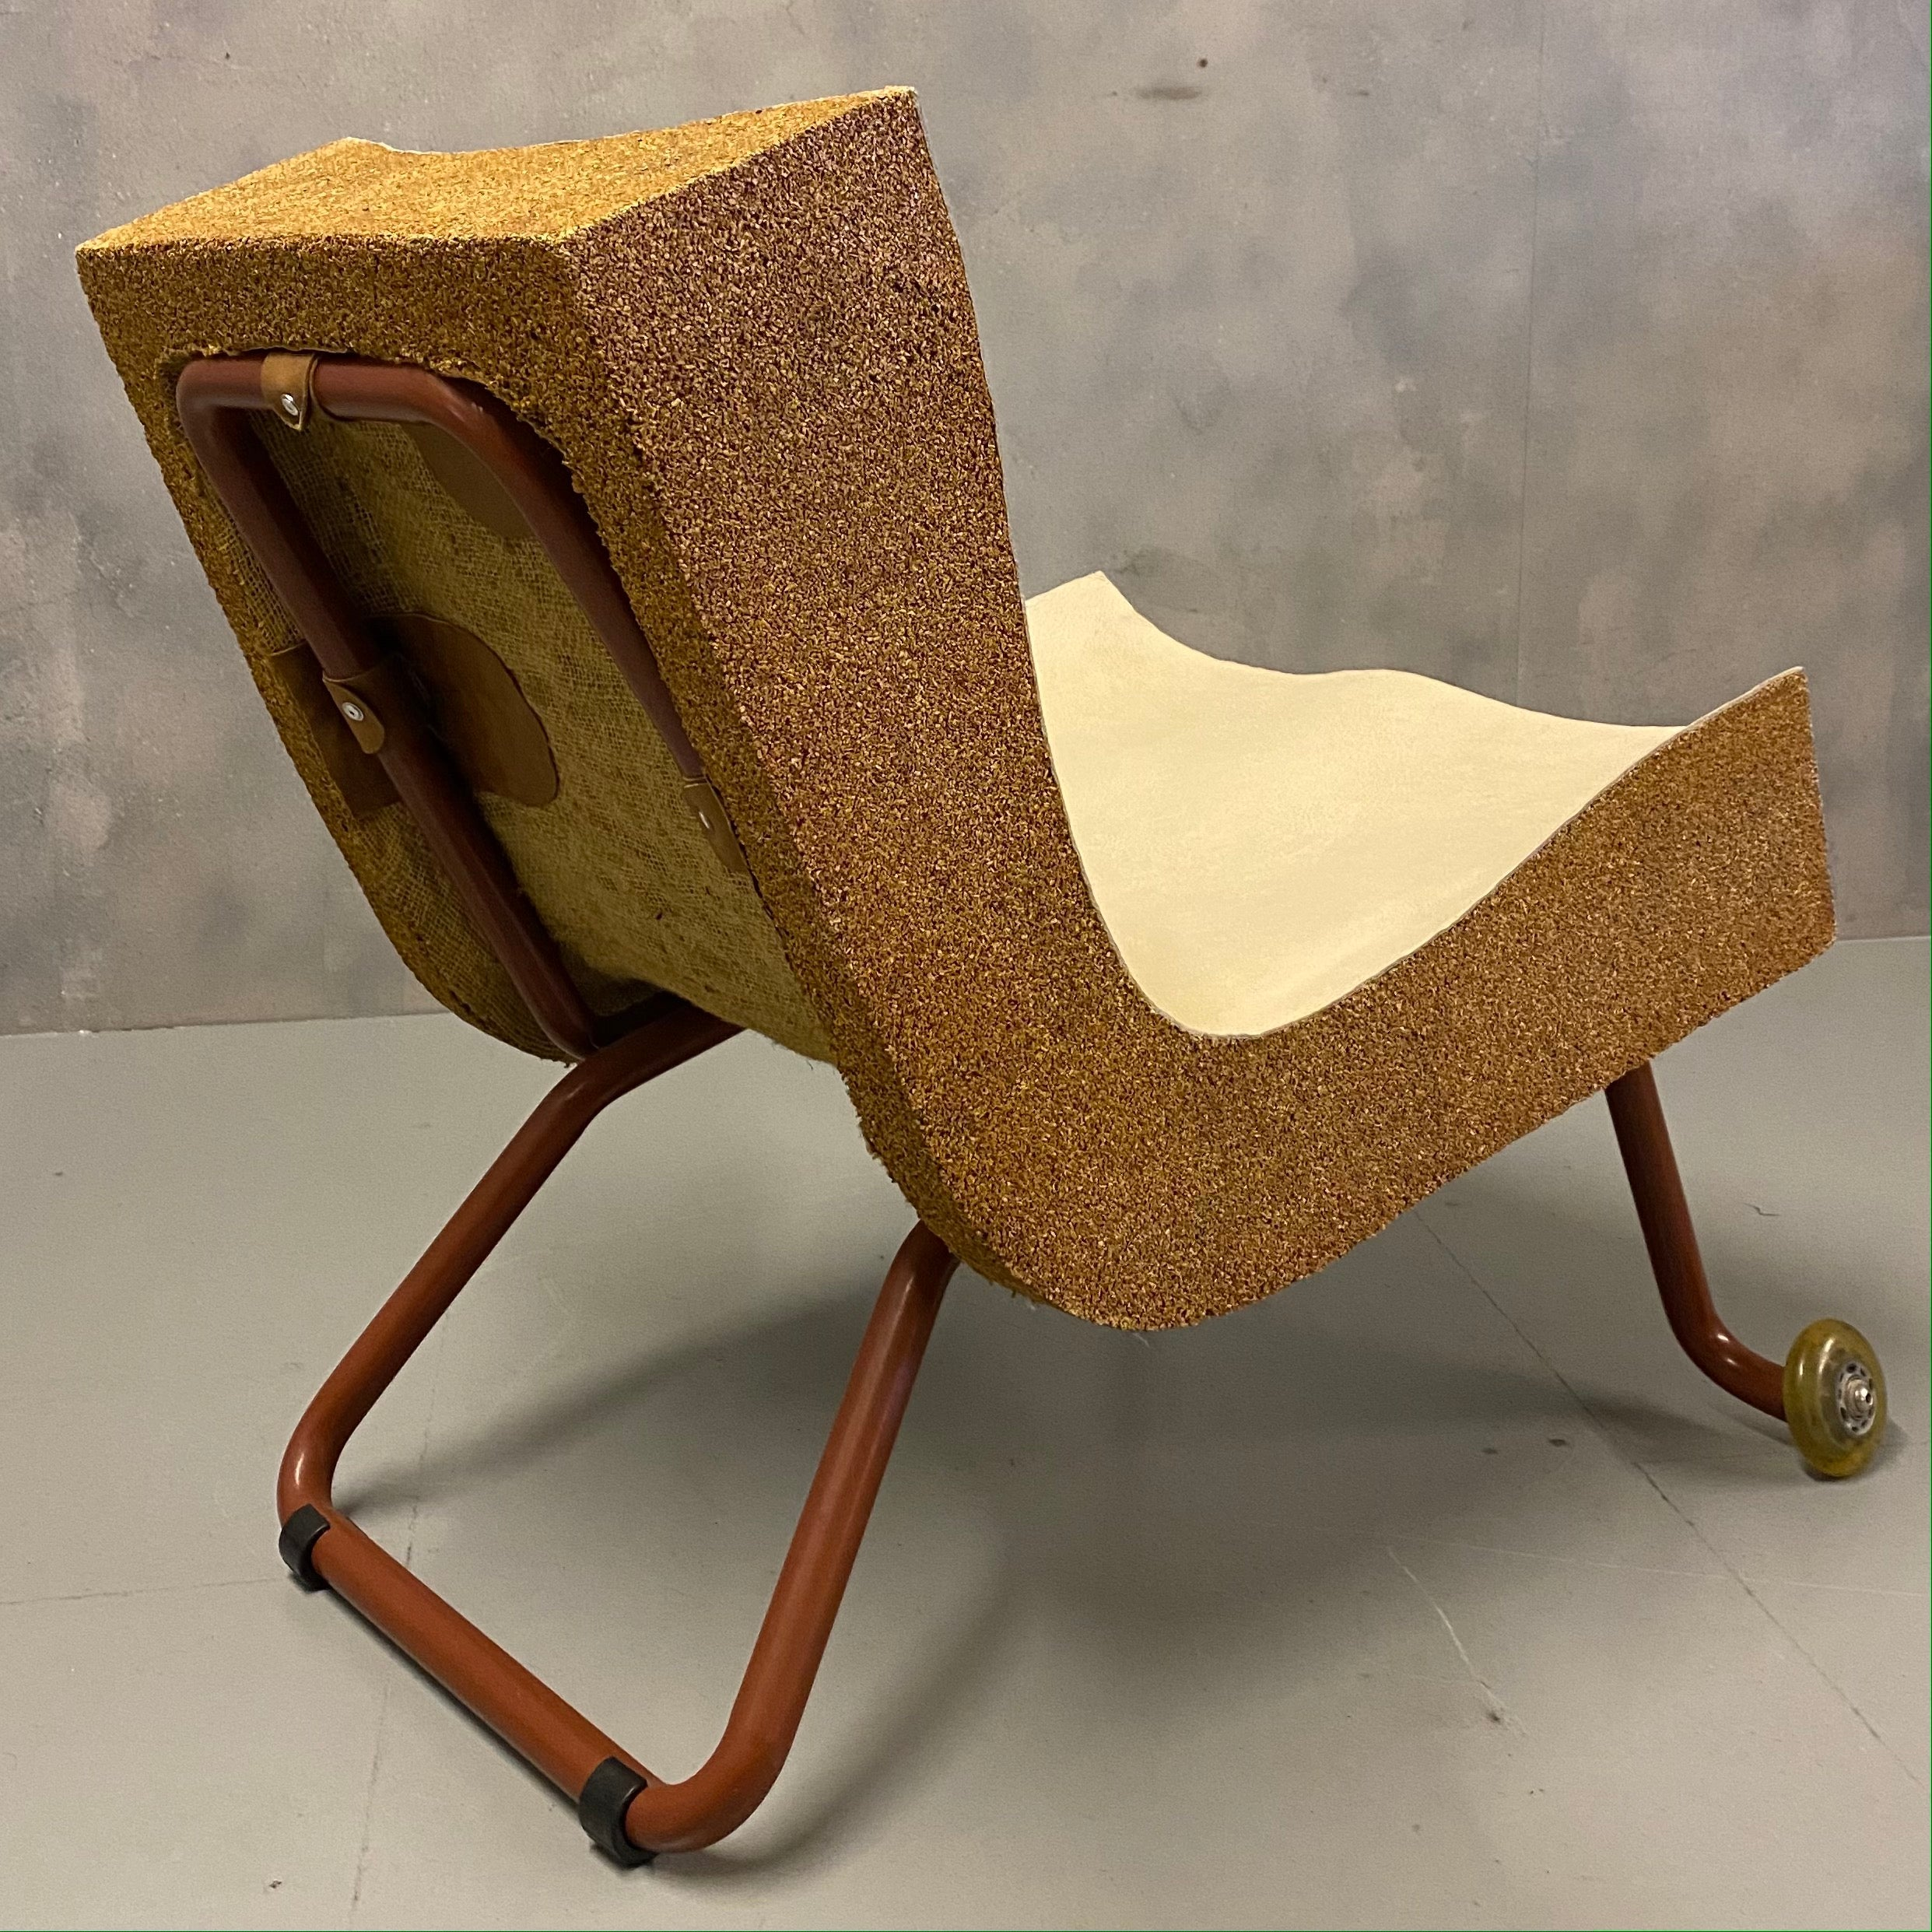 Statement midcentury chair